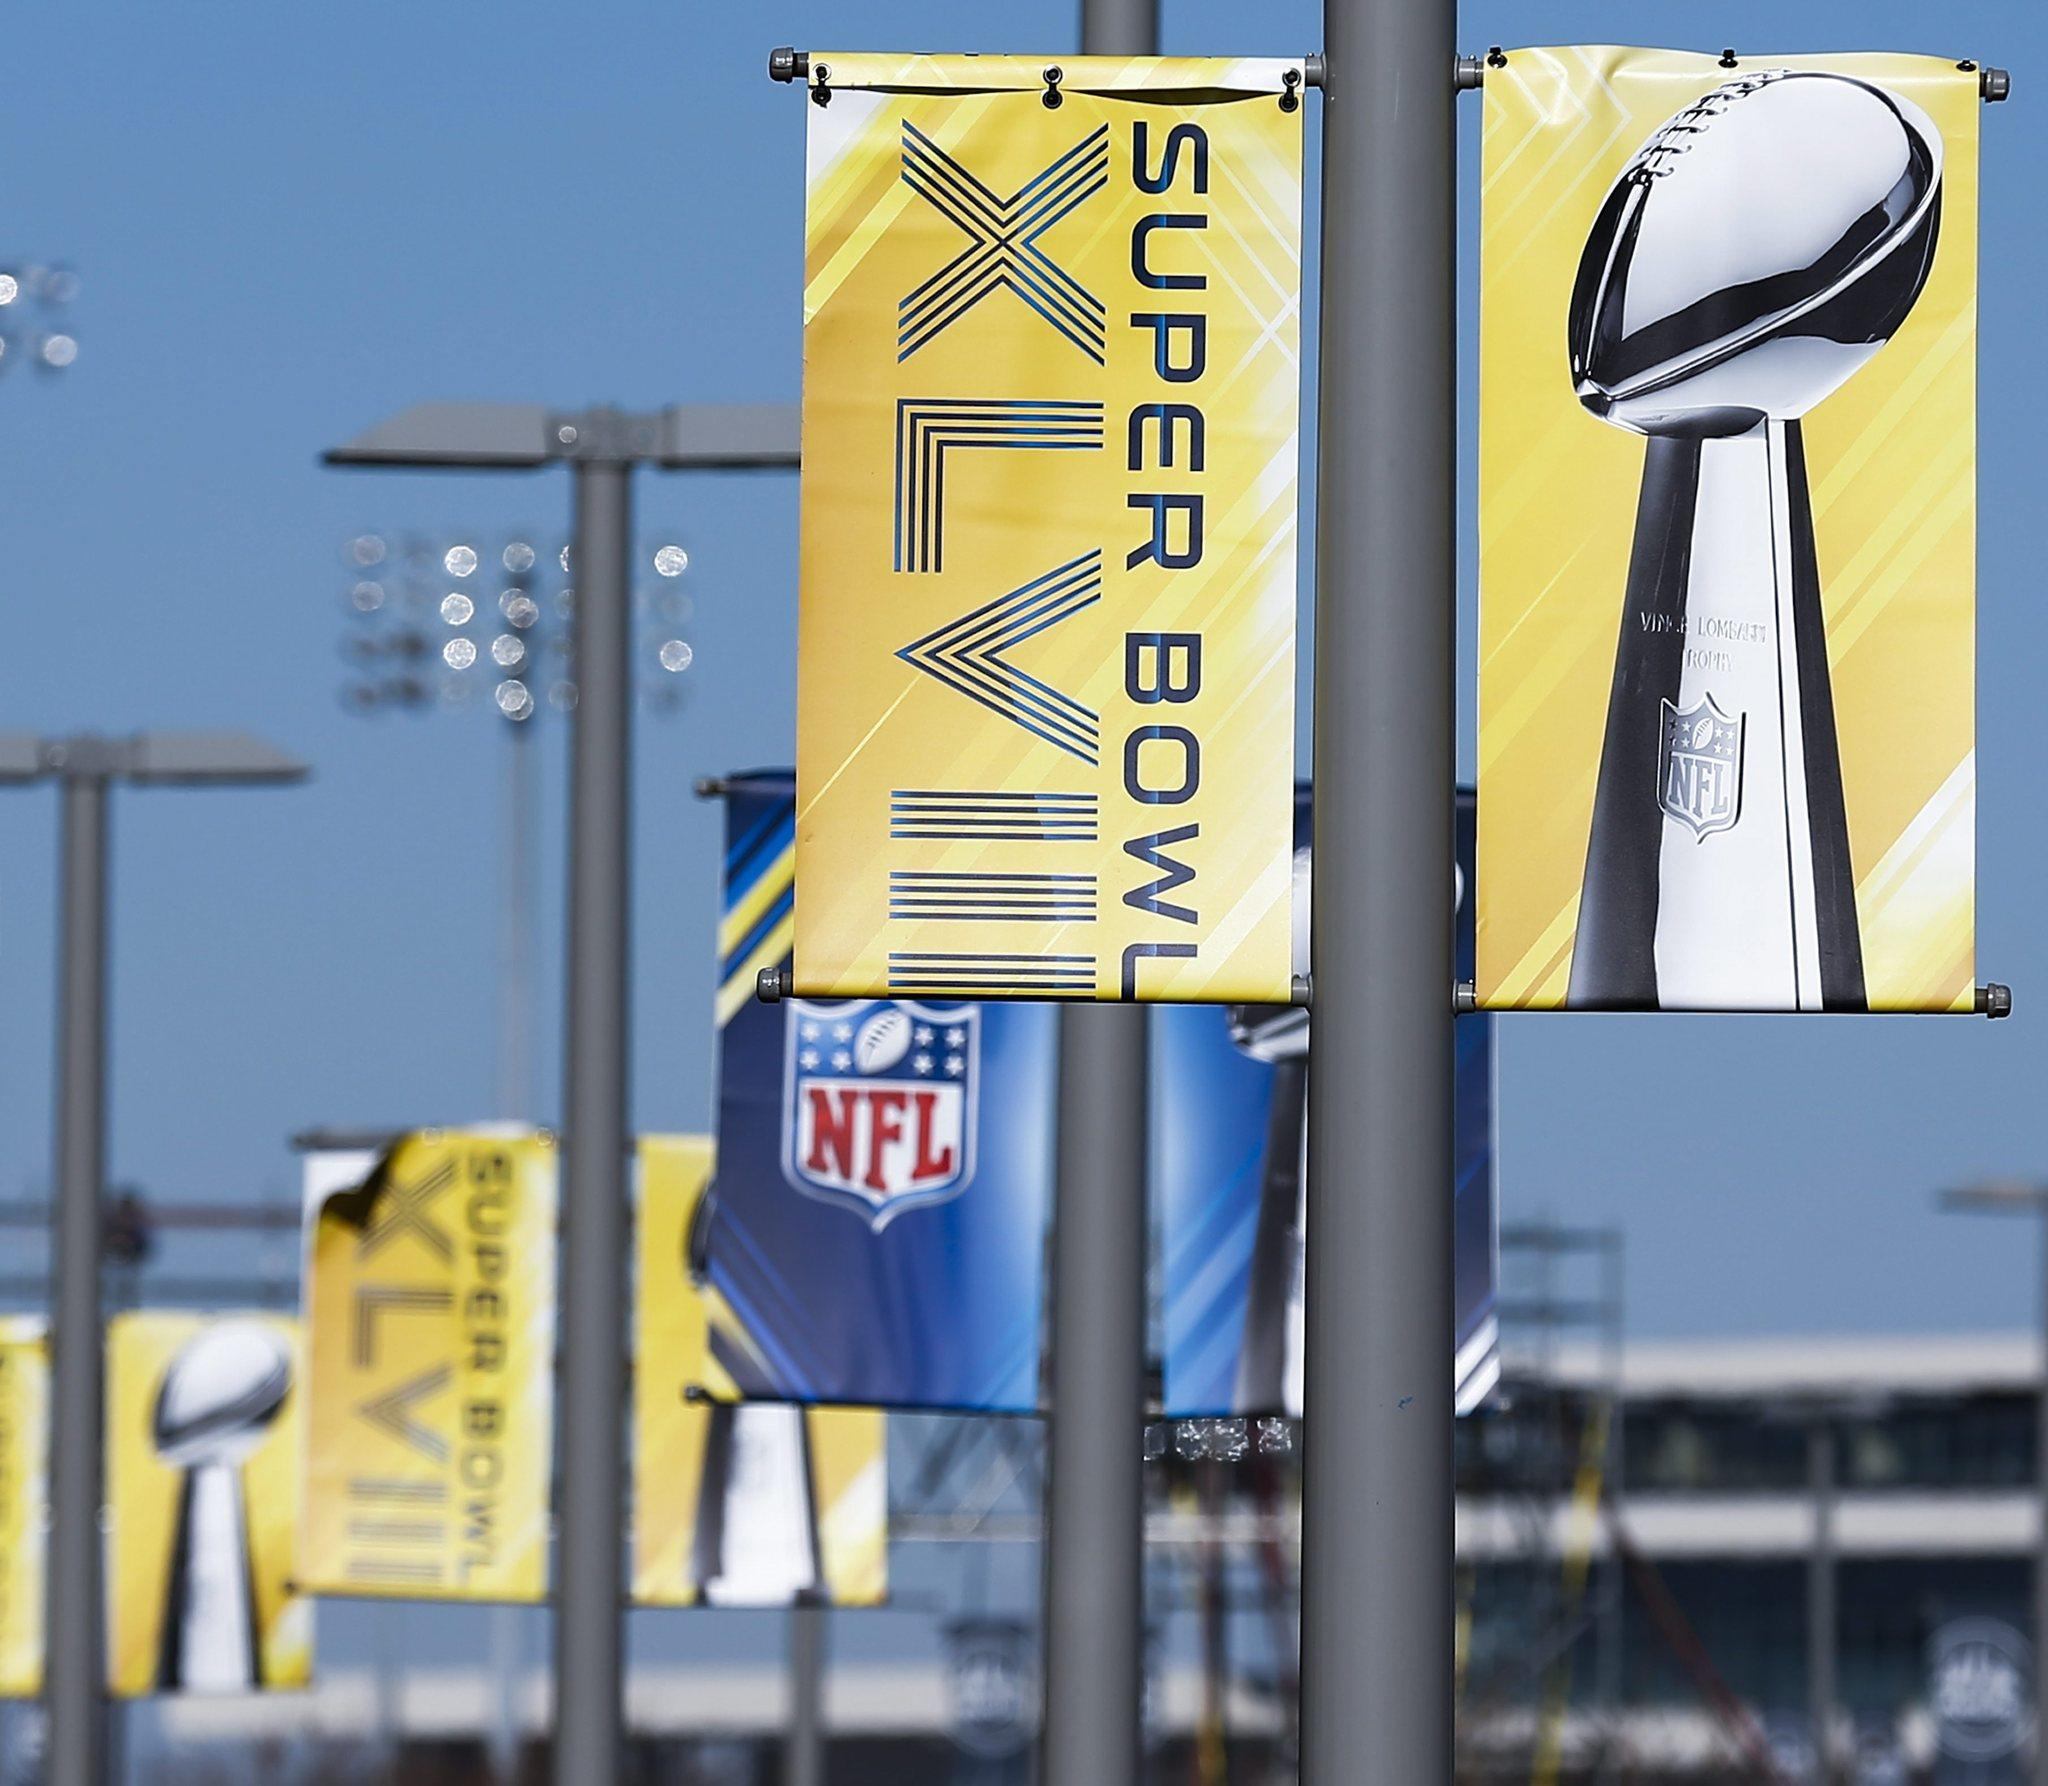 Super Bowl banners hang from posts outside MetLife Stadium as preparations for Super Bowl XLVIII continue in East Rutherford, New Jersey, USA, 29 January 2014.